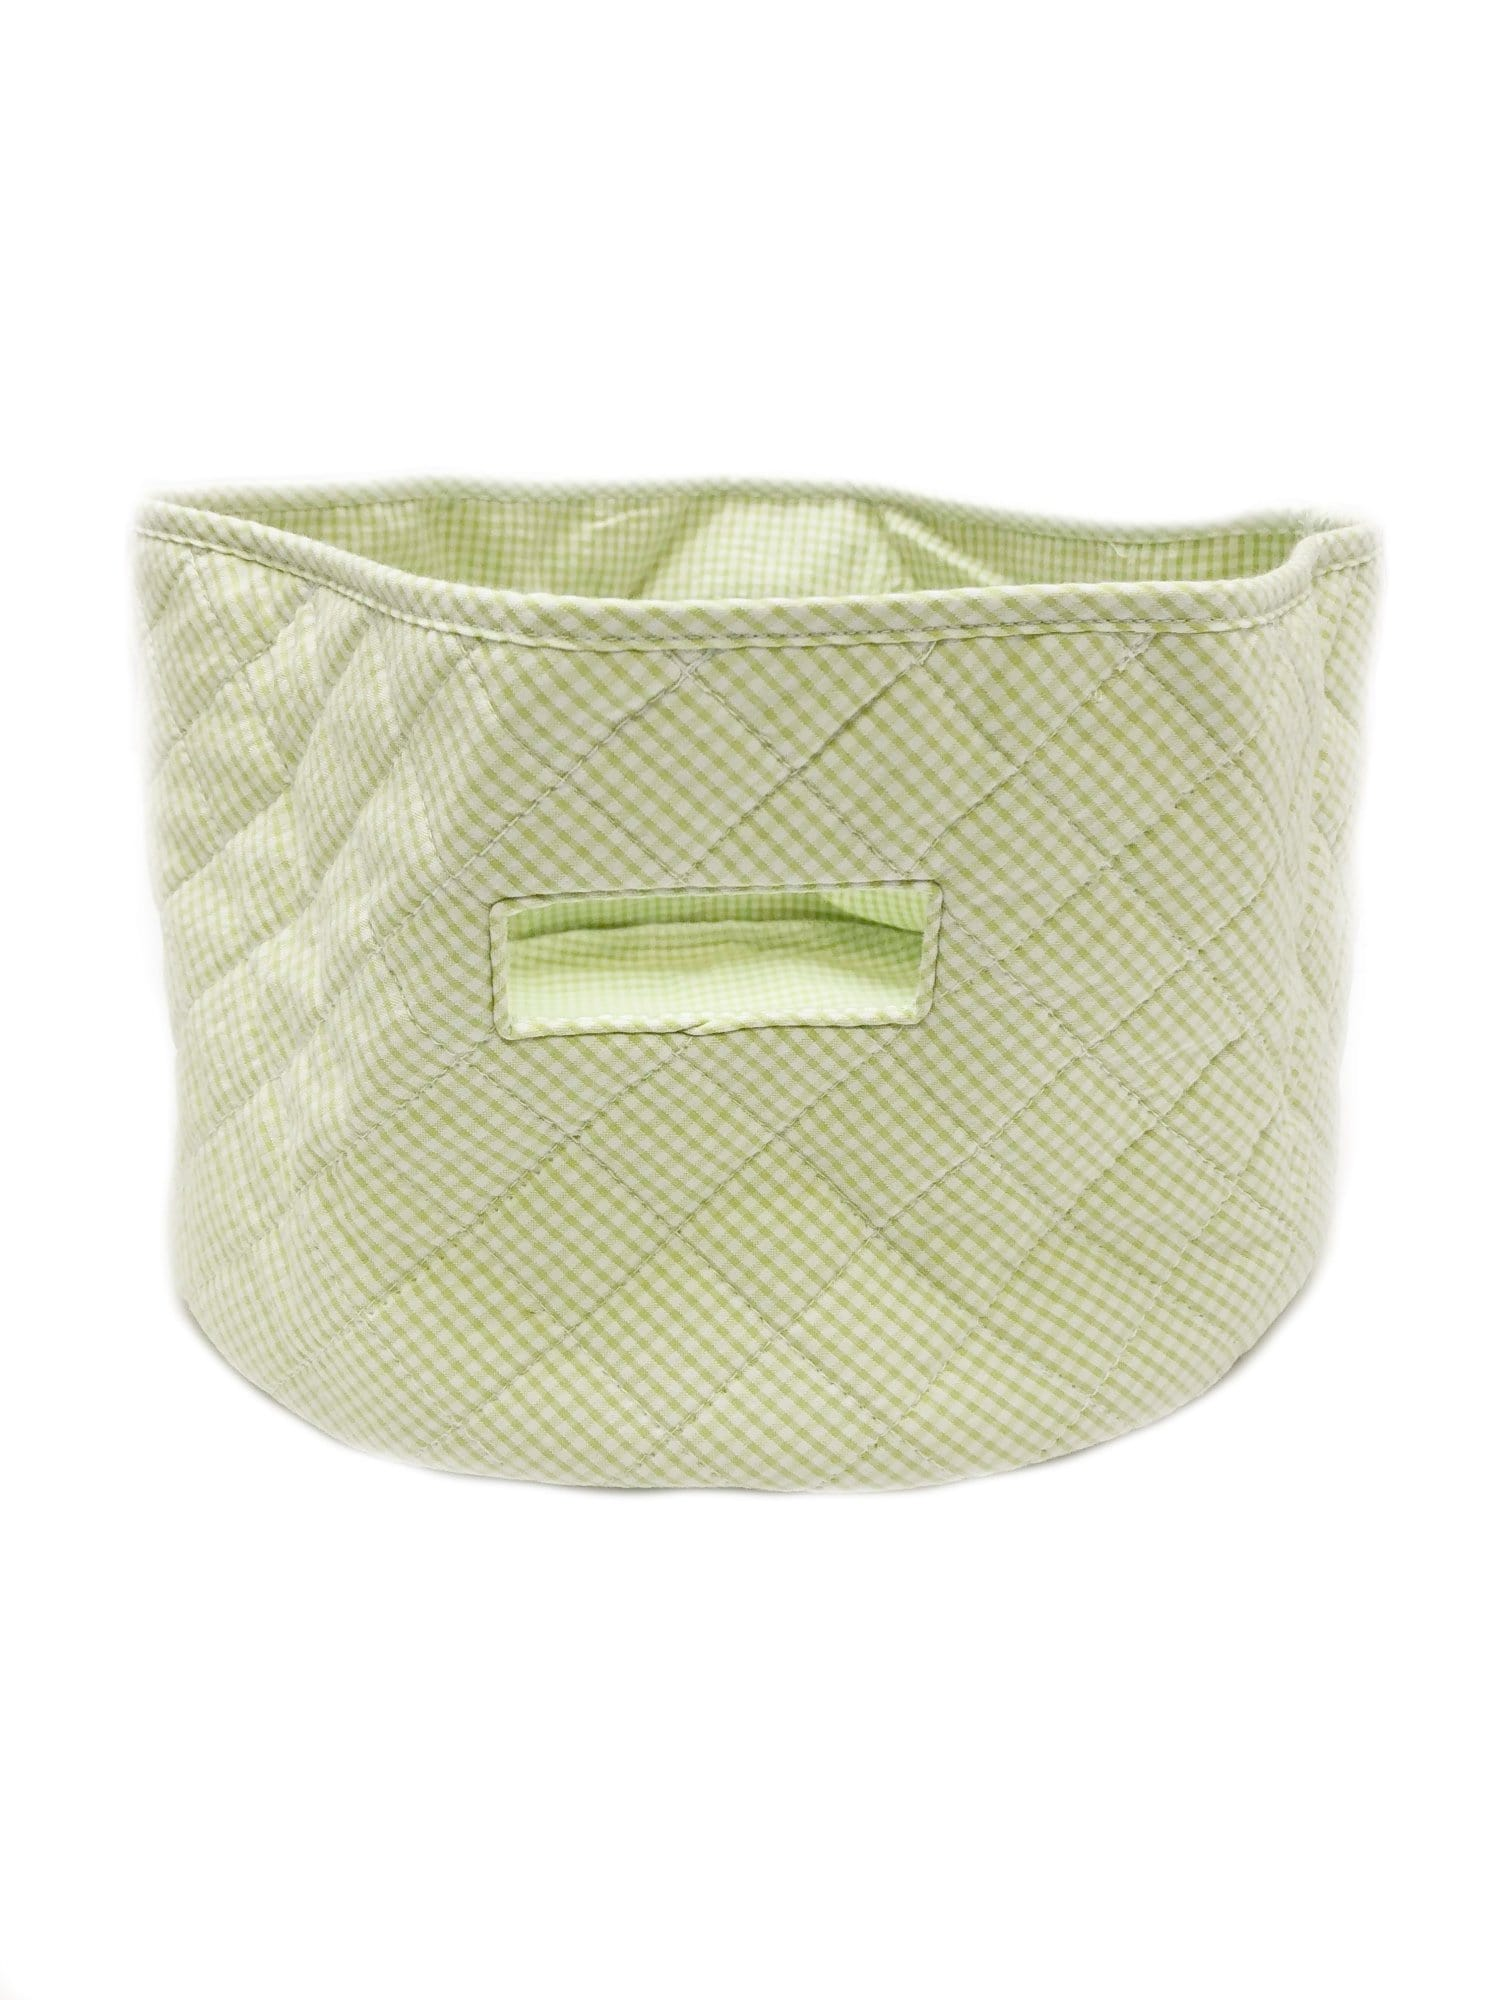 Nursery Basket-Green